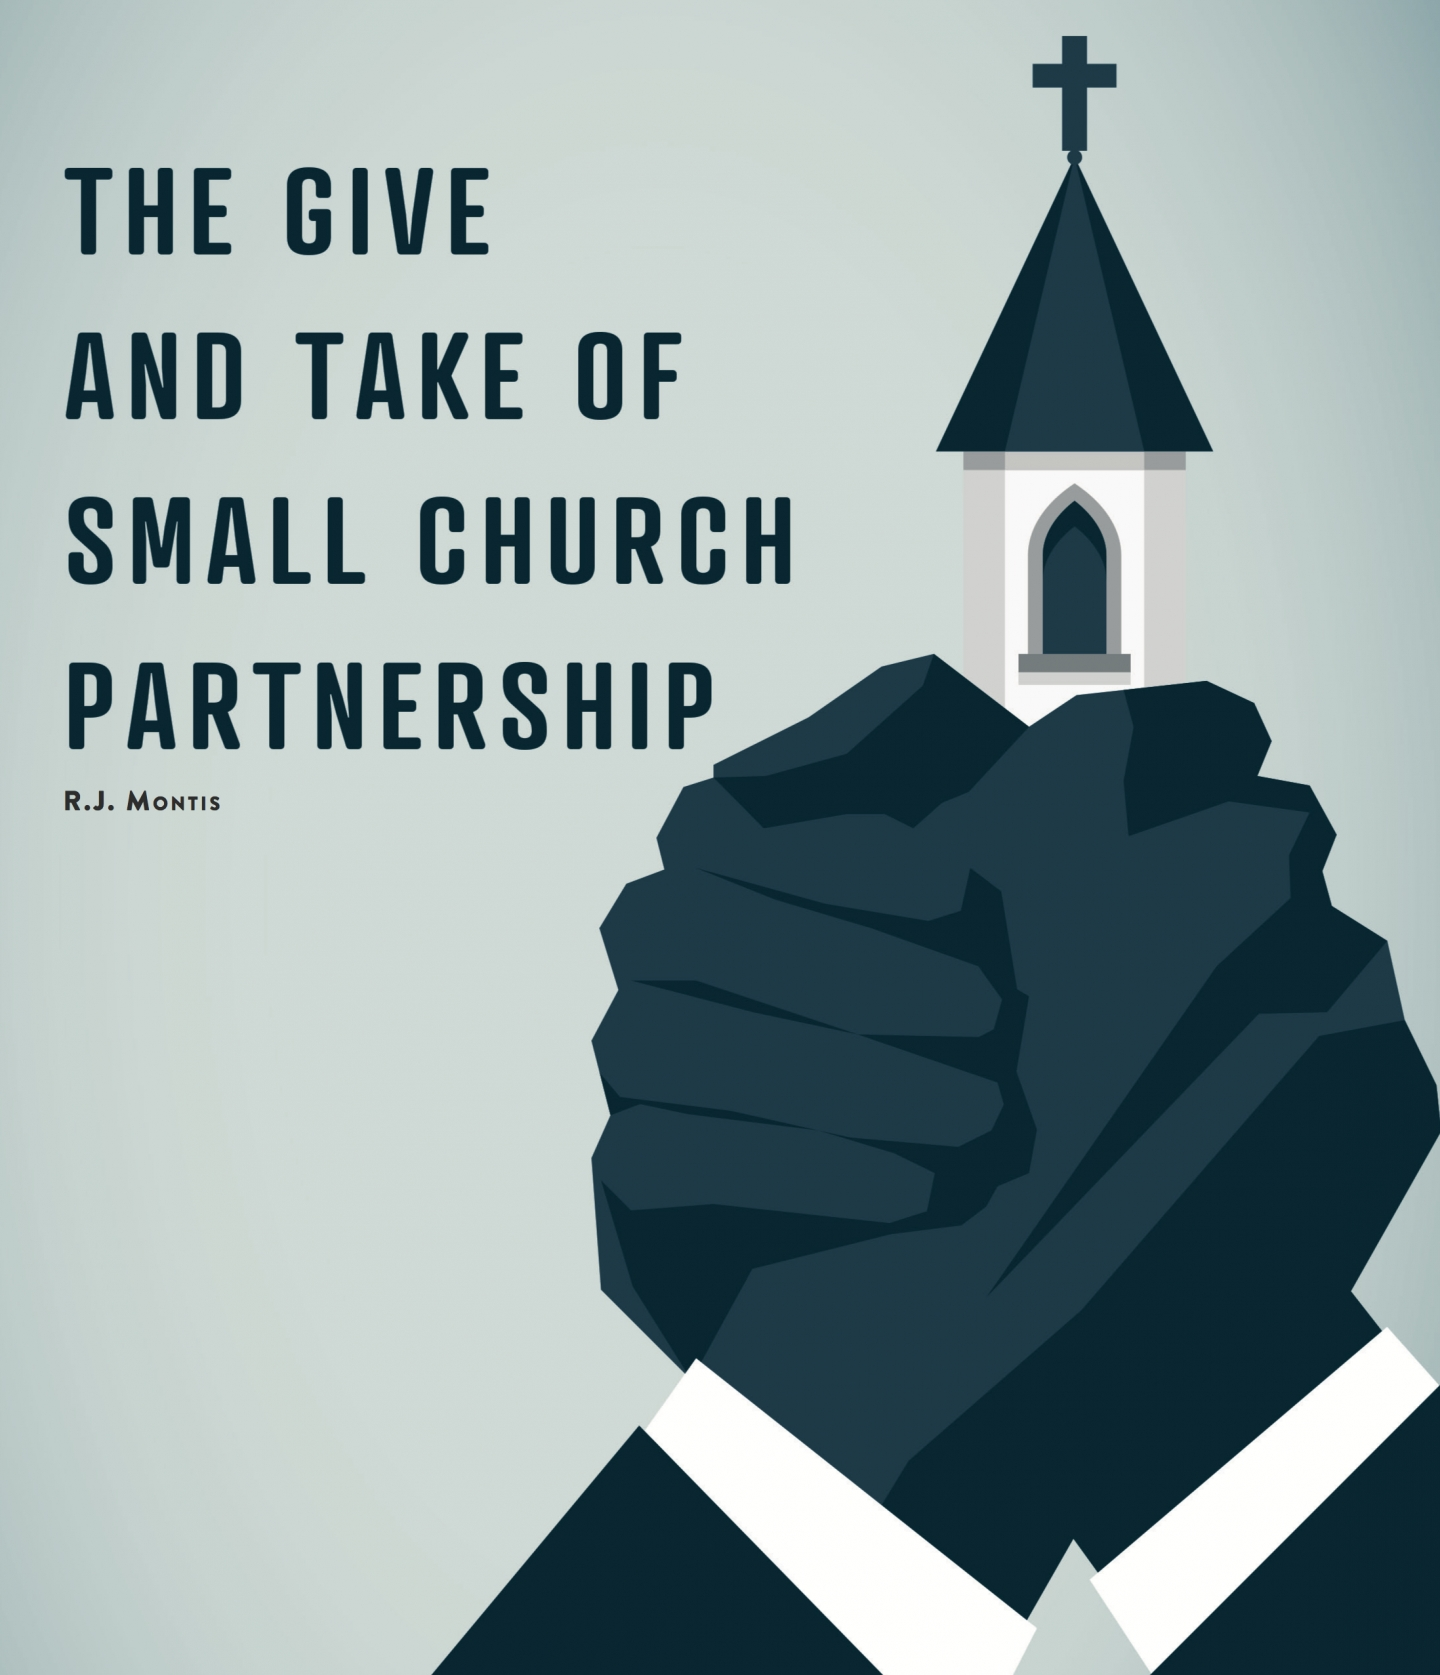 The Give and Take of Small Church Partnership